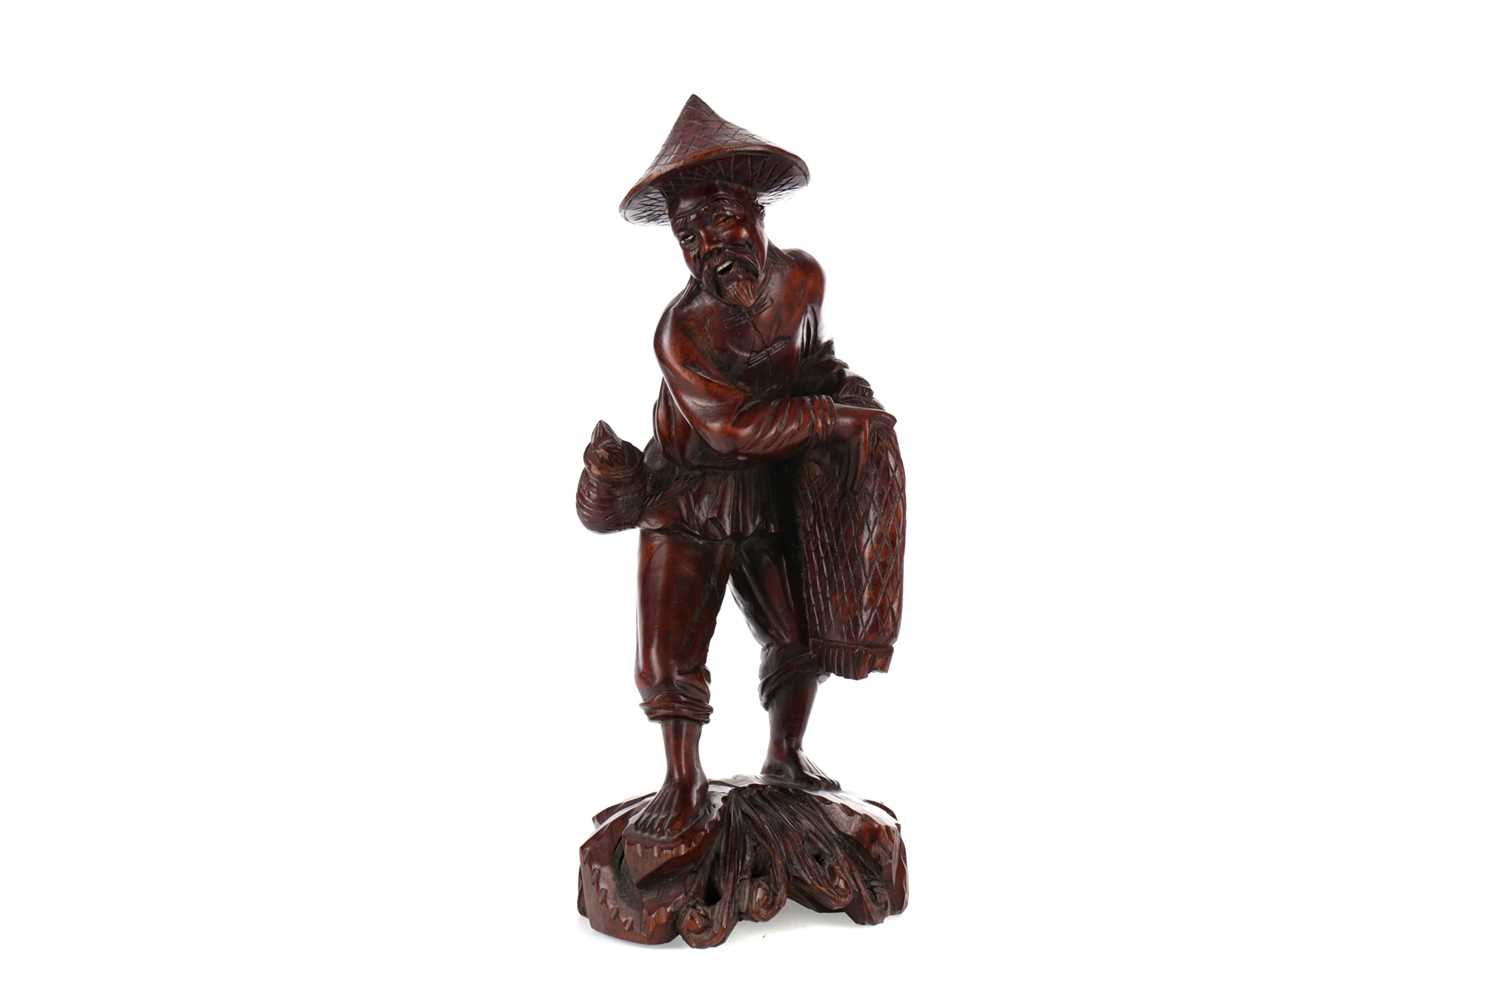 Lot 725 - AN EARLY 20TH CENTURY CHINESE CARVED WOOD FIGURE OF A FISHERMAN